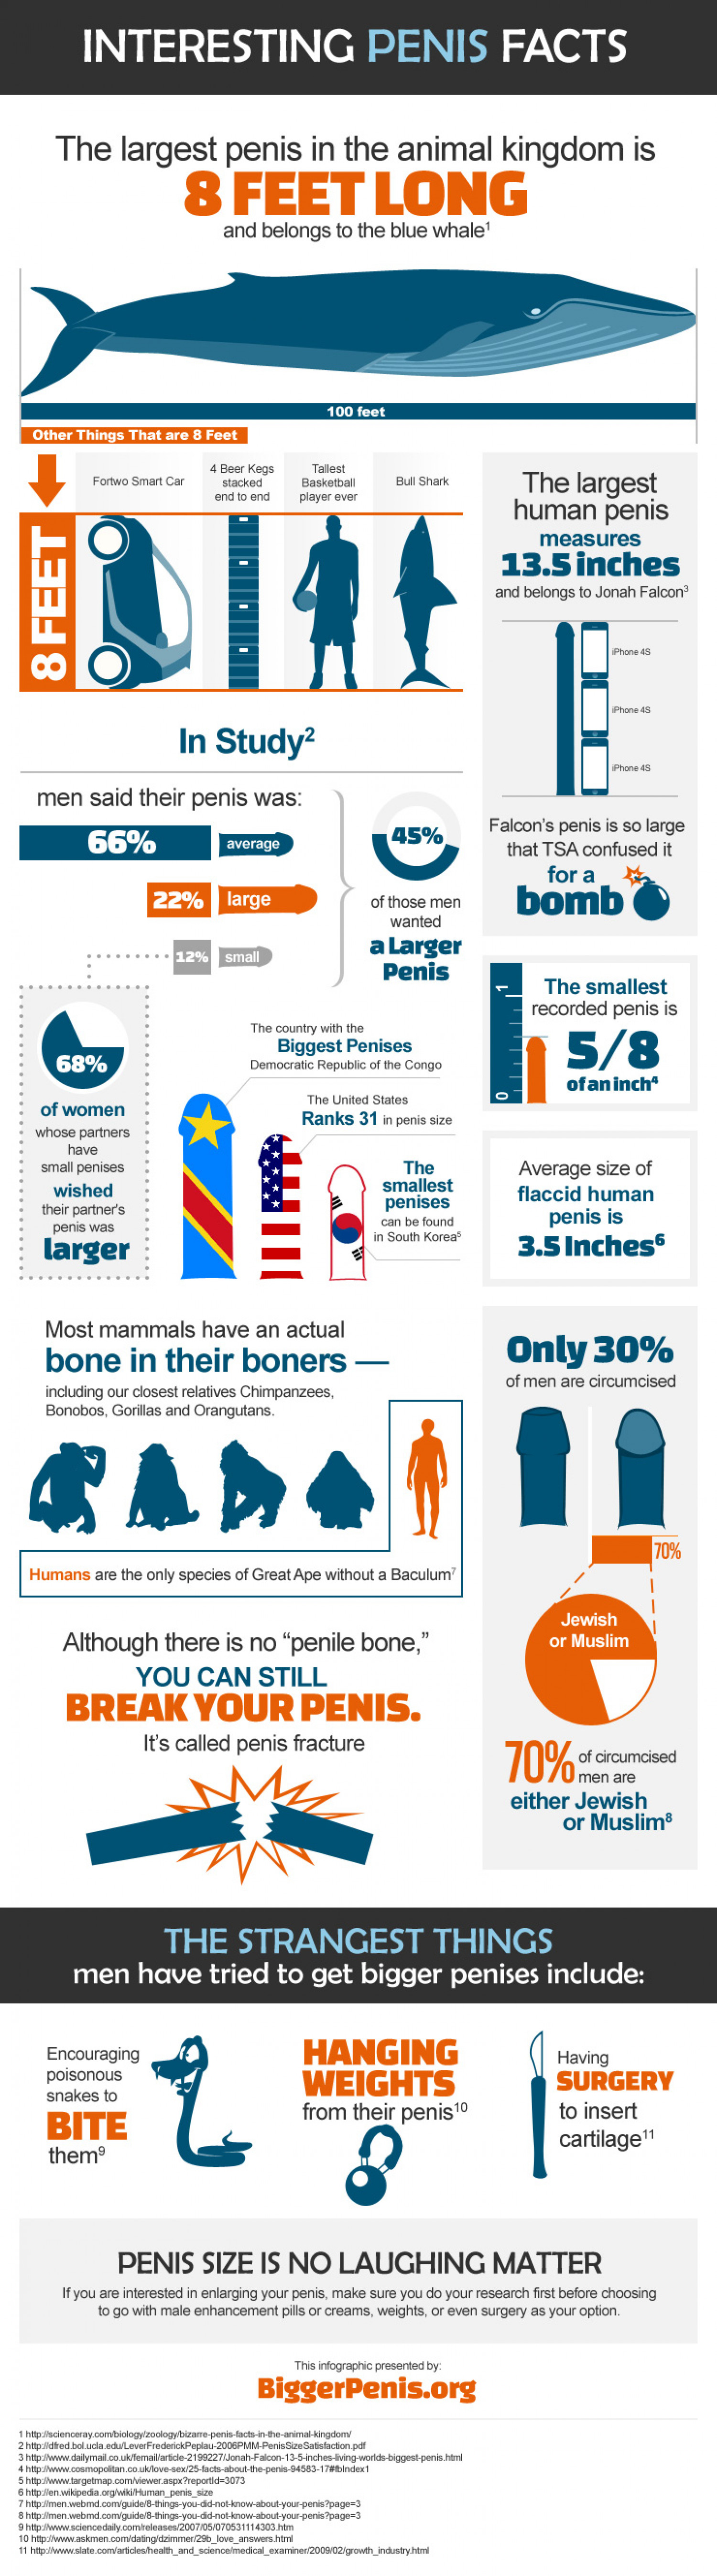 Interesting Penis Facts Infographic